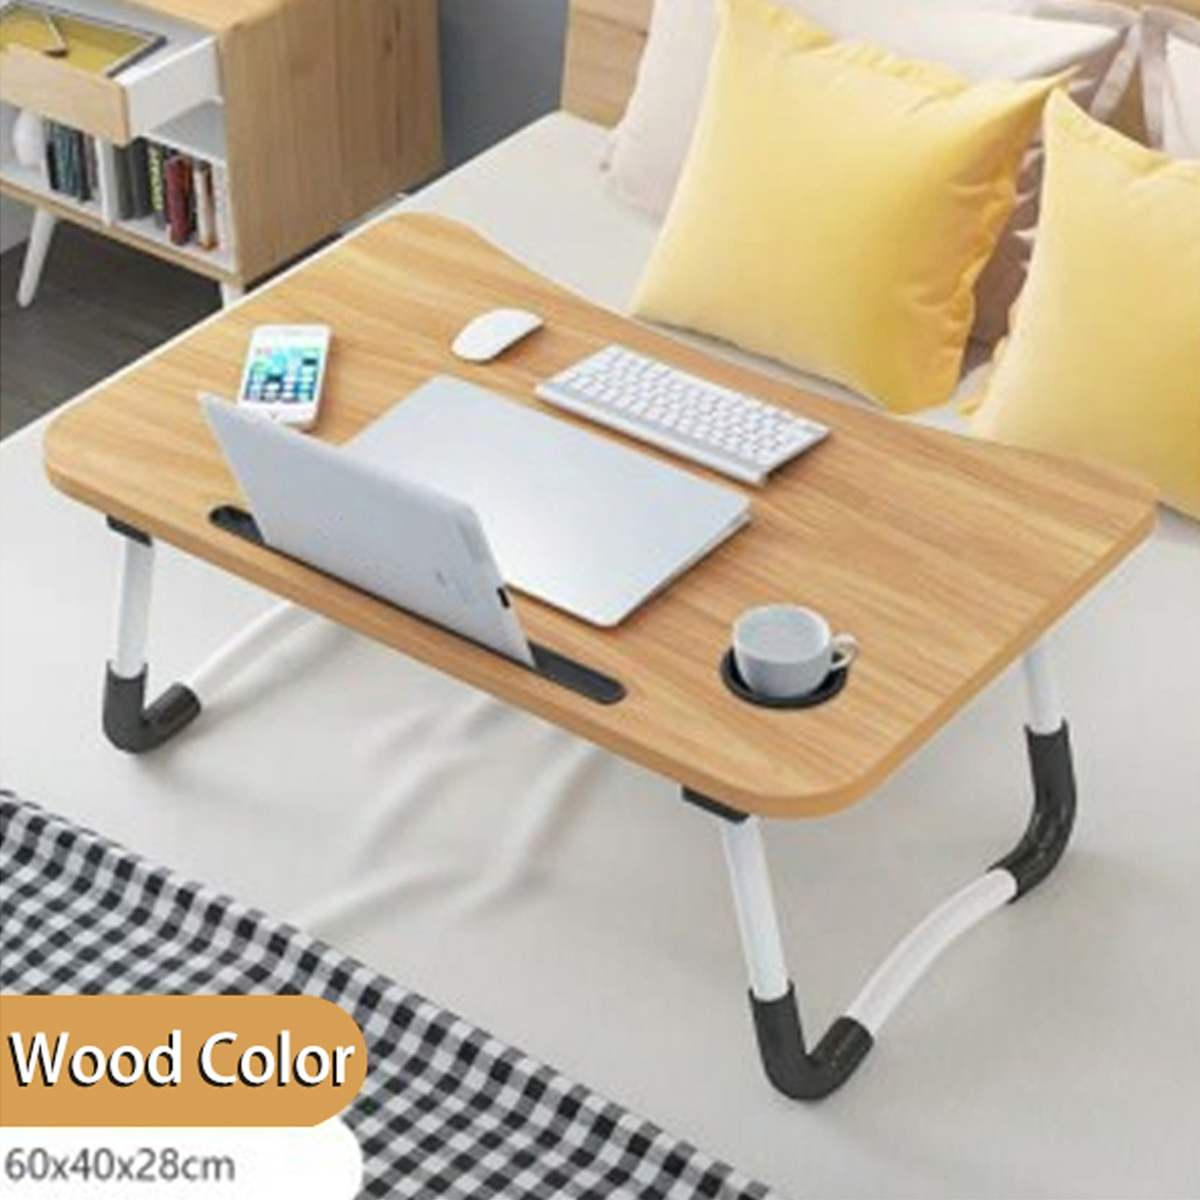 Wooden Foldable Computer Desk Folding Laptop Stand Holder Portable Study Table Desk For Bed Sofa Tea Serving Table Stand